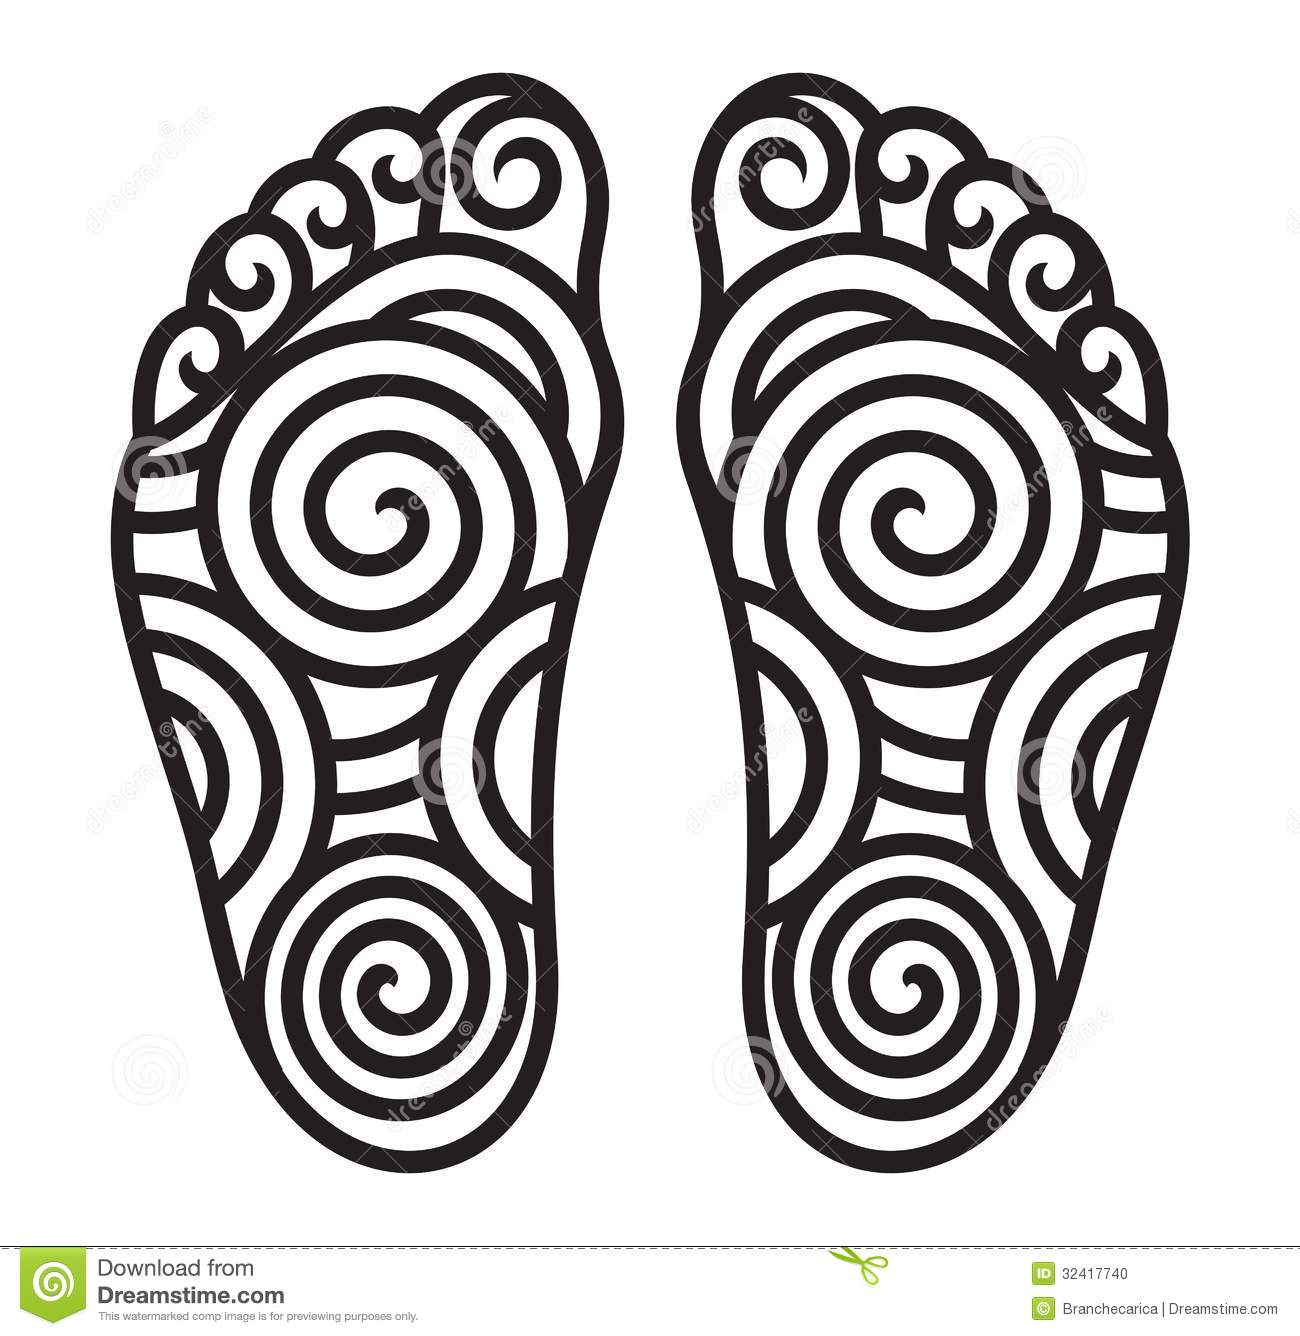 Feet symbol stock vector illustration of color graphic 29690251 foot symbol stock photo biocorpaavc Gallery